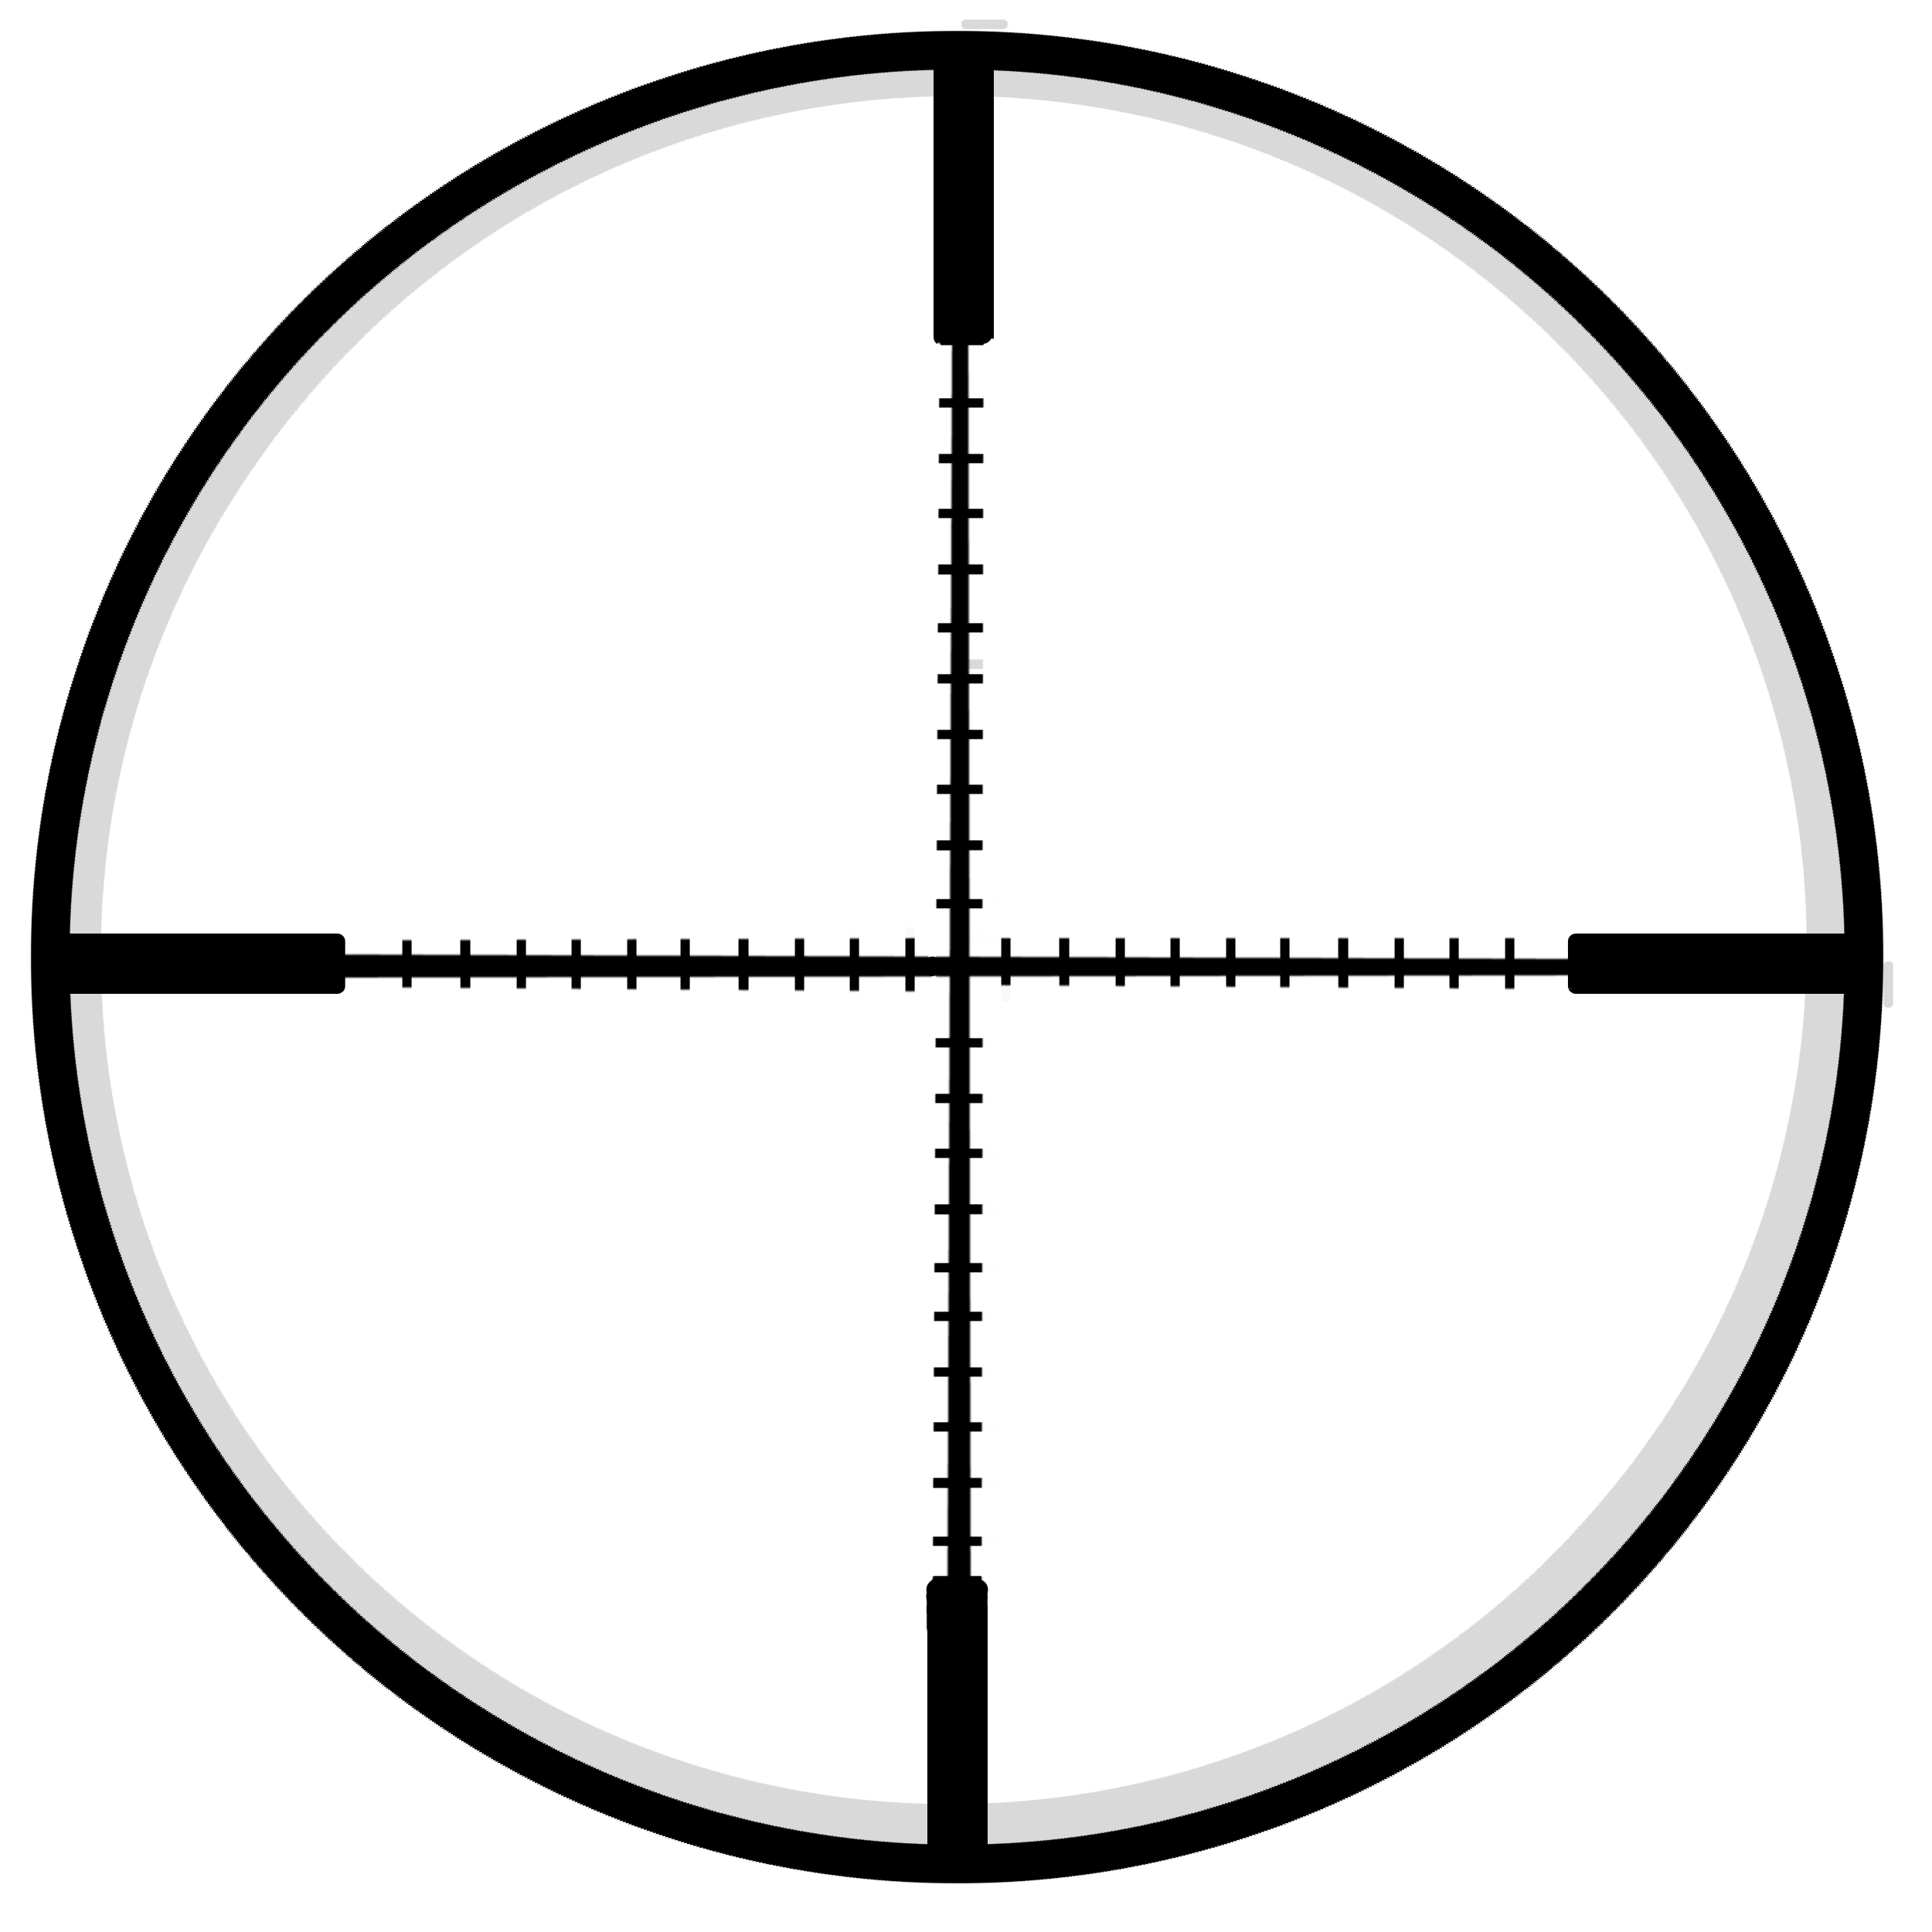 Aiming reticle png simple crosshairs transparent background. Steam workshop arma mods